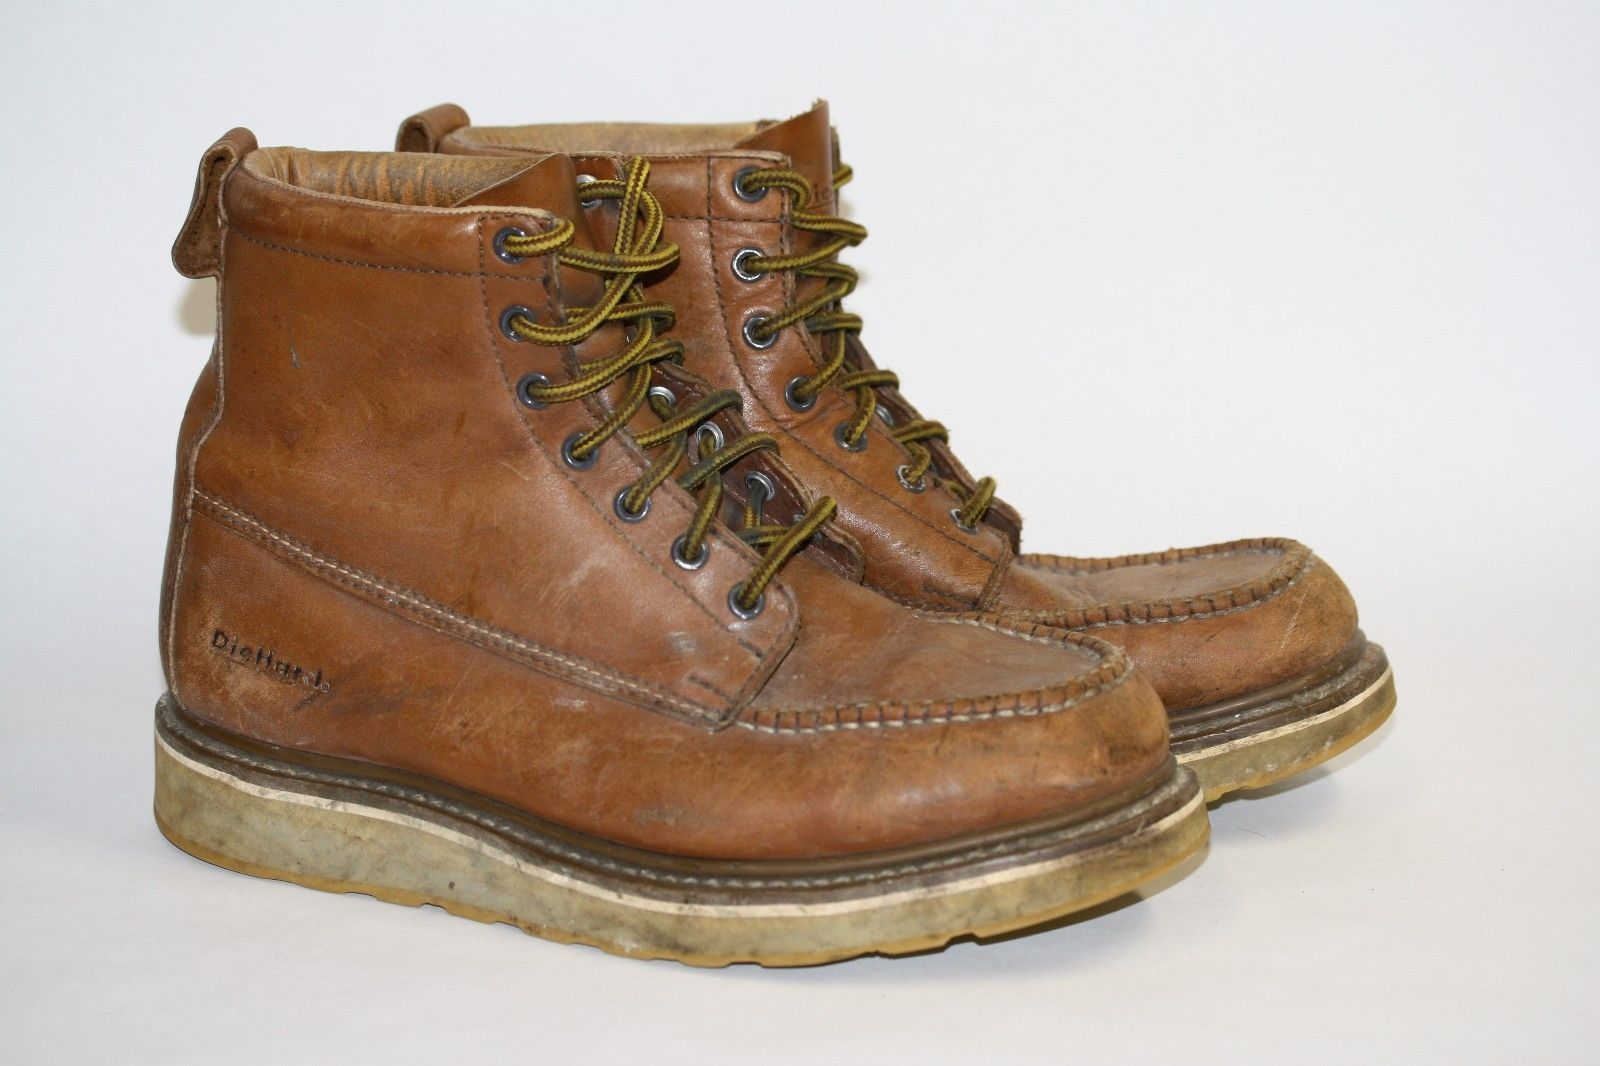 348987c4fab92 Used Sears Diehard Sure Track Mens Work Boots Light Brown Size 10D Leather  | eBay